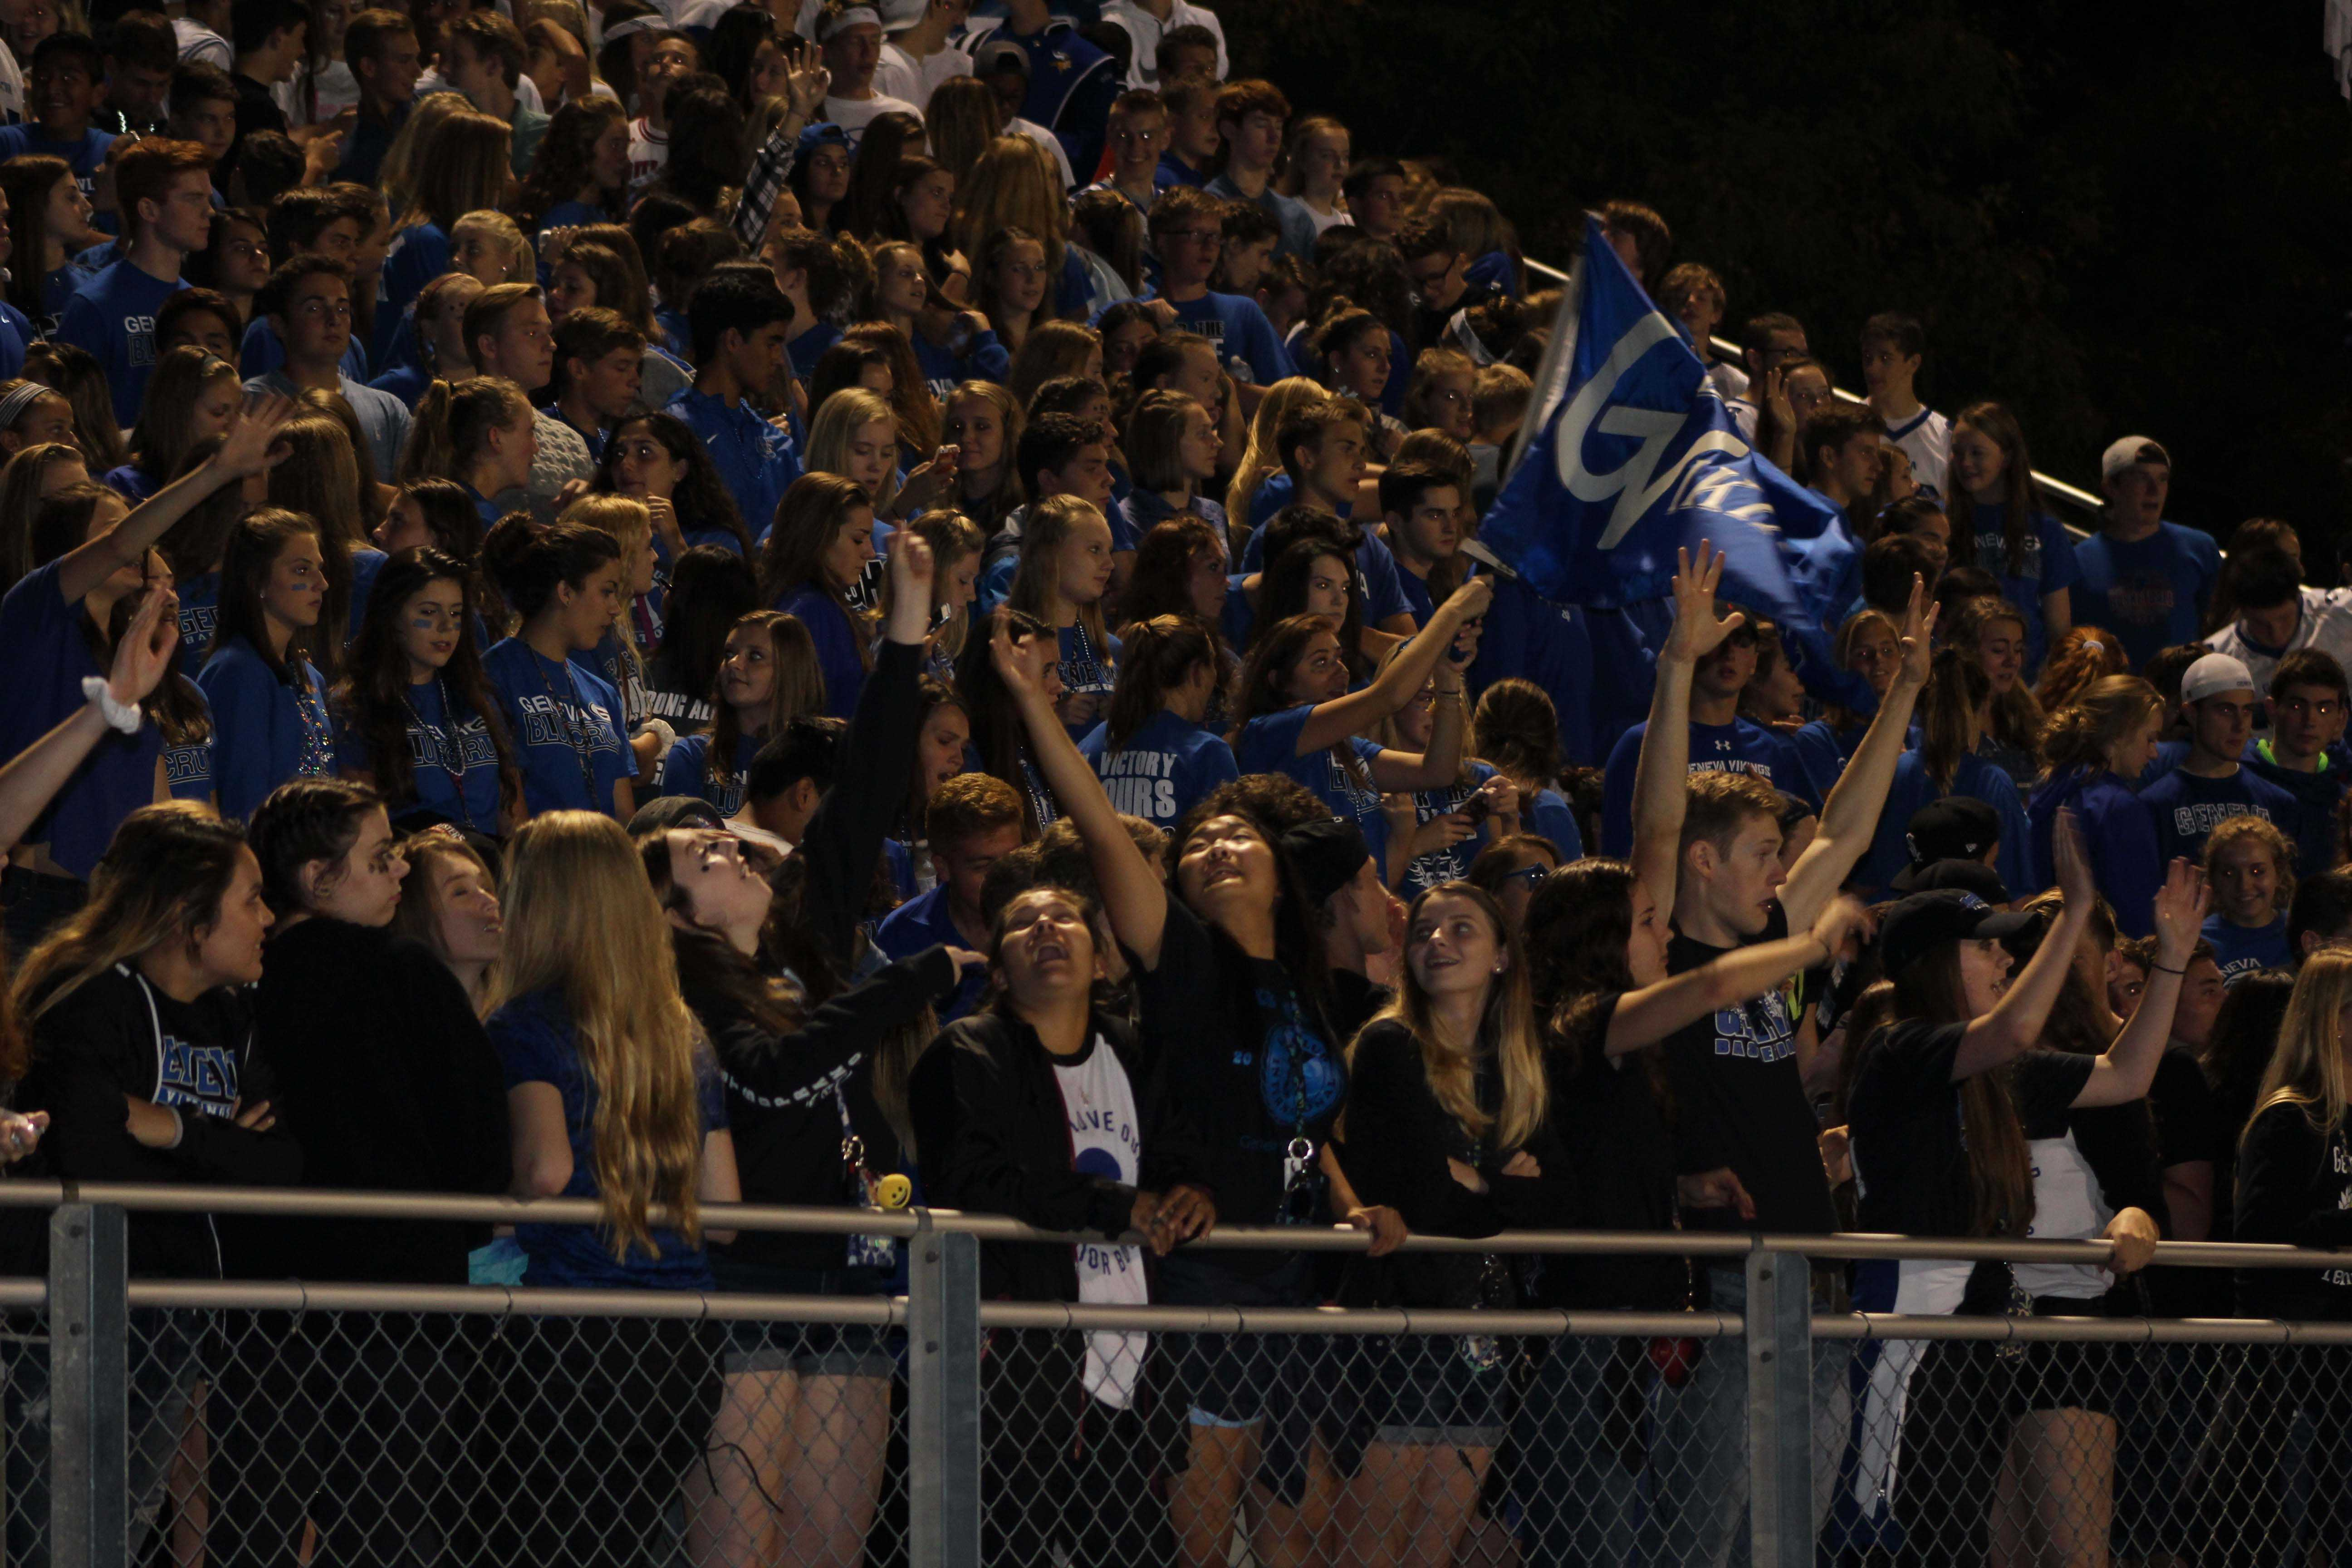 Geneva fan section at the 9/23 Homecoming game